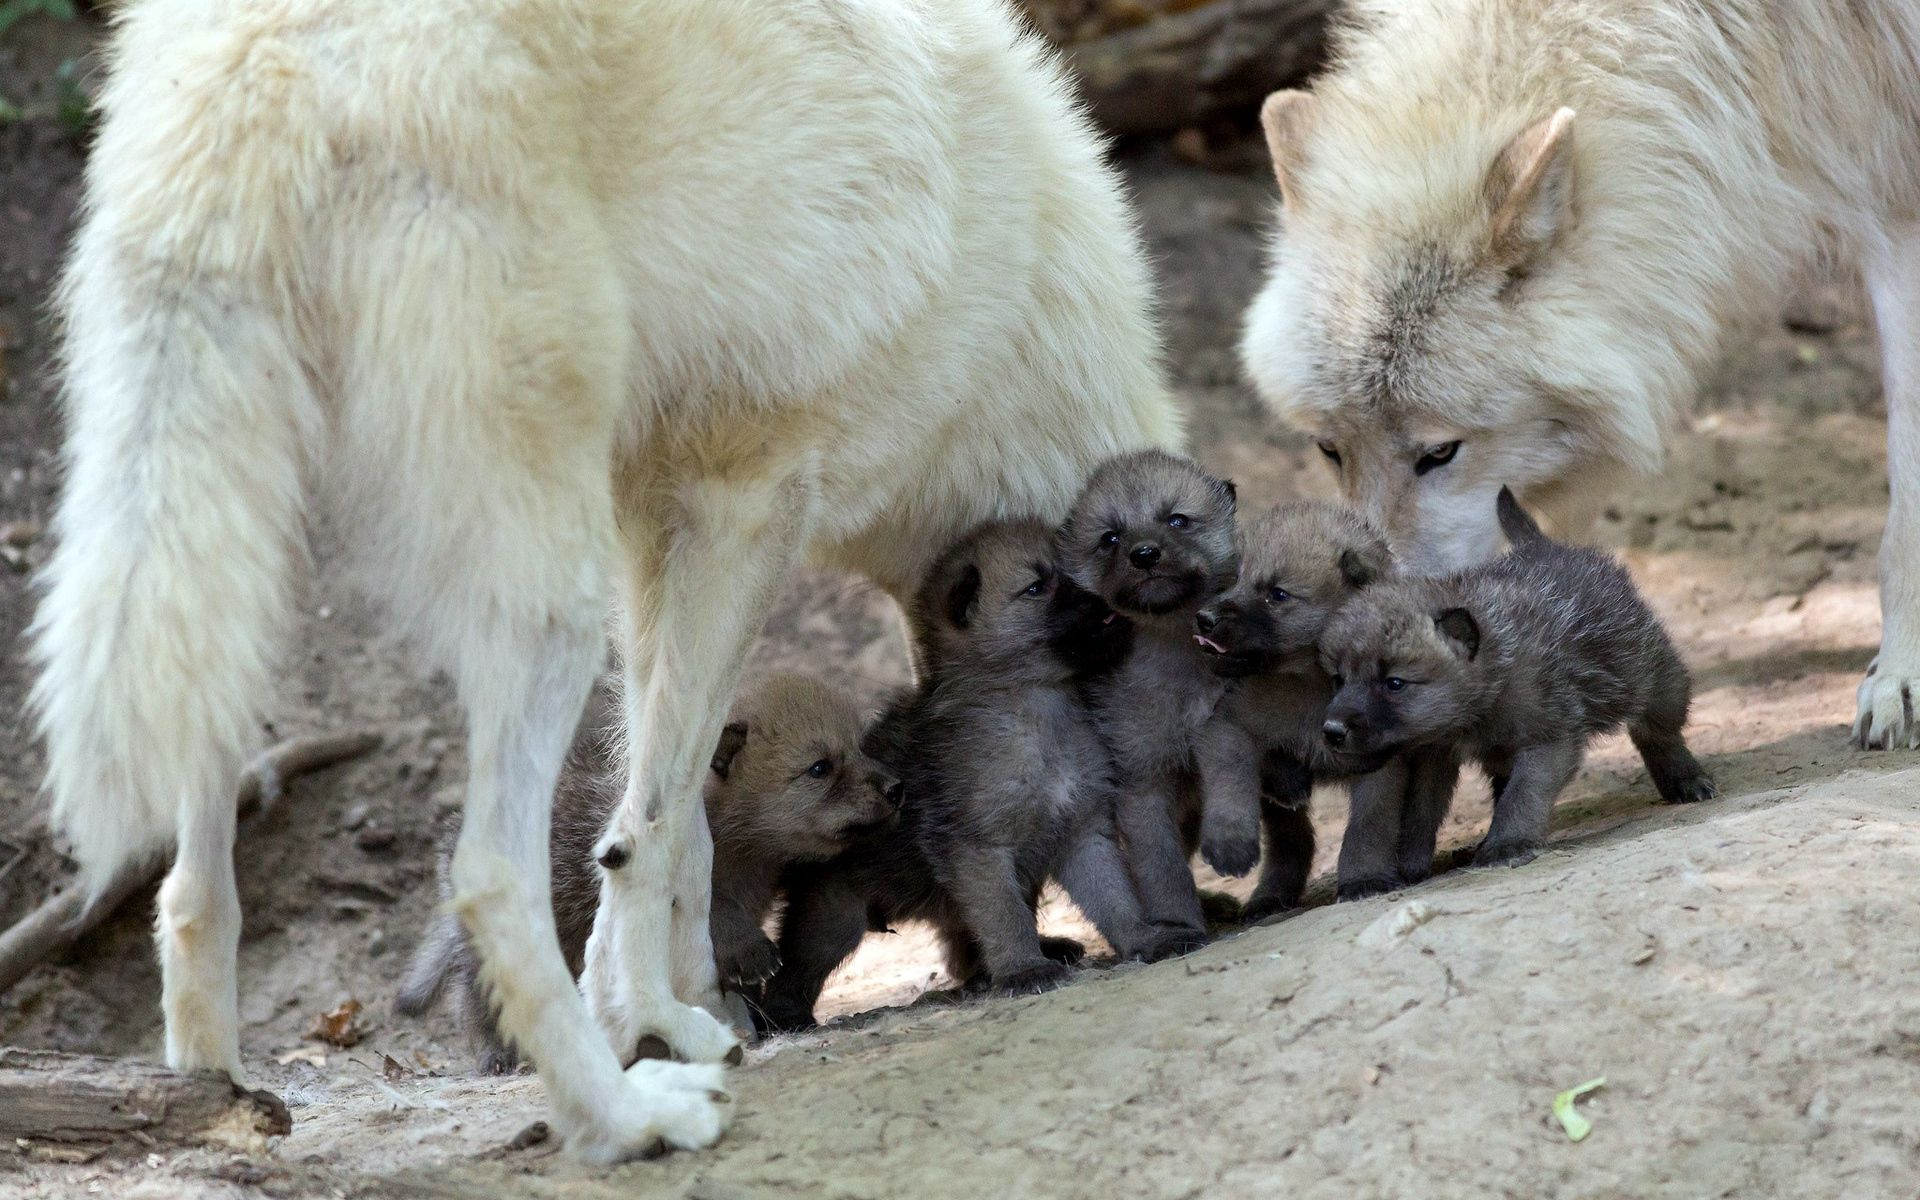 135660 download wallpaper Animals, Wolfs, Puppies, Cubs, Young, Care screensavers and pictures for free